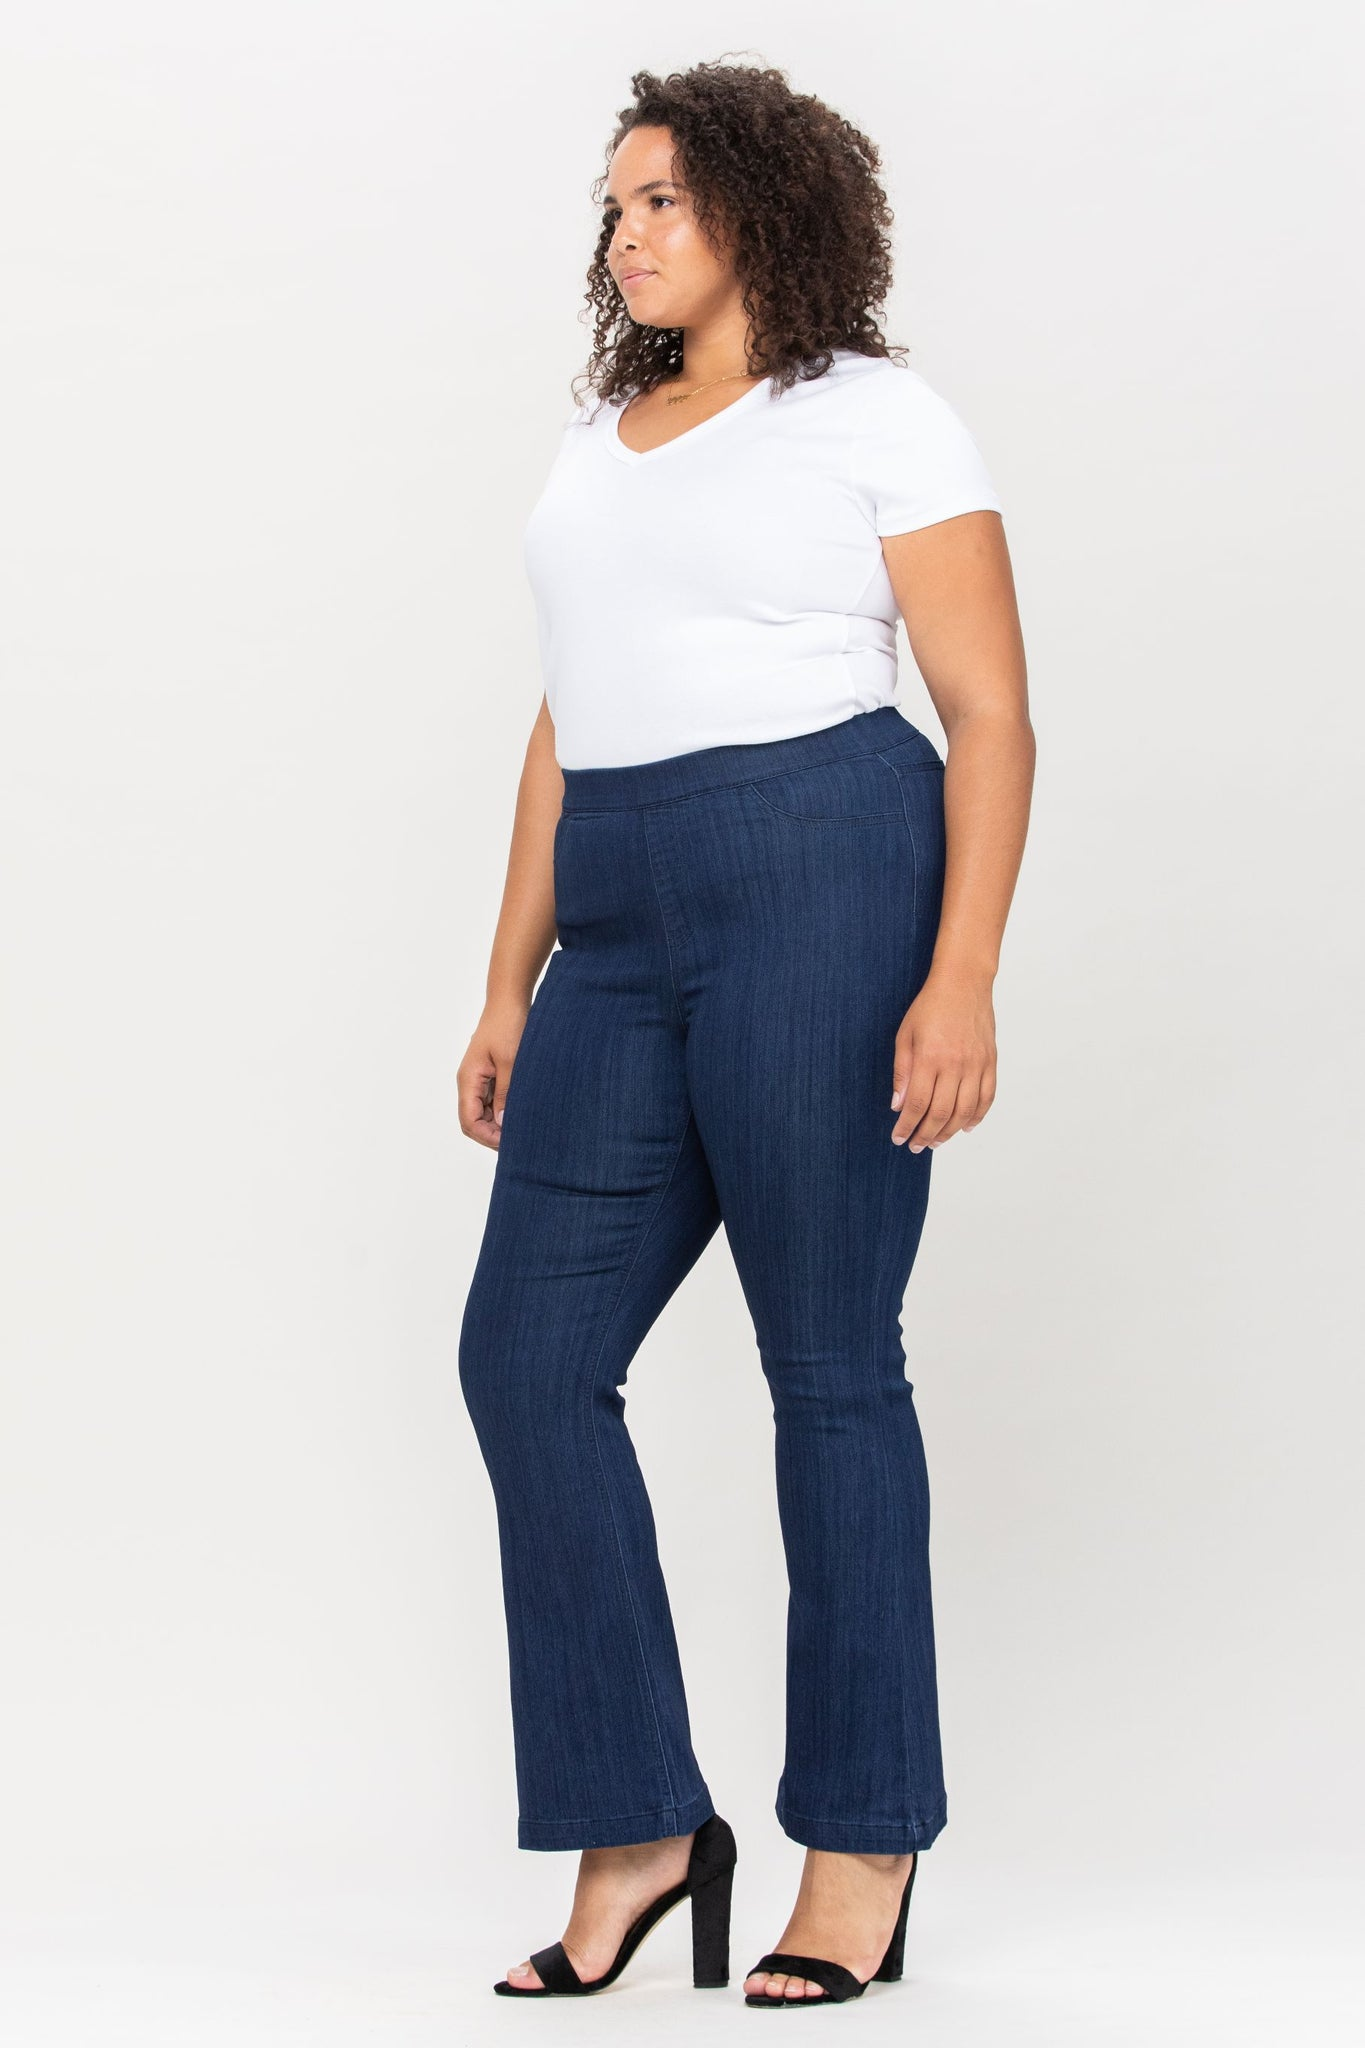 Cello Mid Rise Pull On Deluxe Comfort Flare Jeans - Dark Blue Denim - Petite Plus